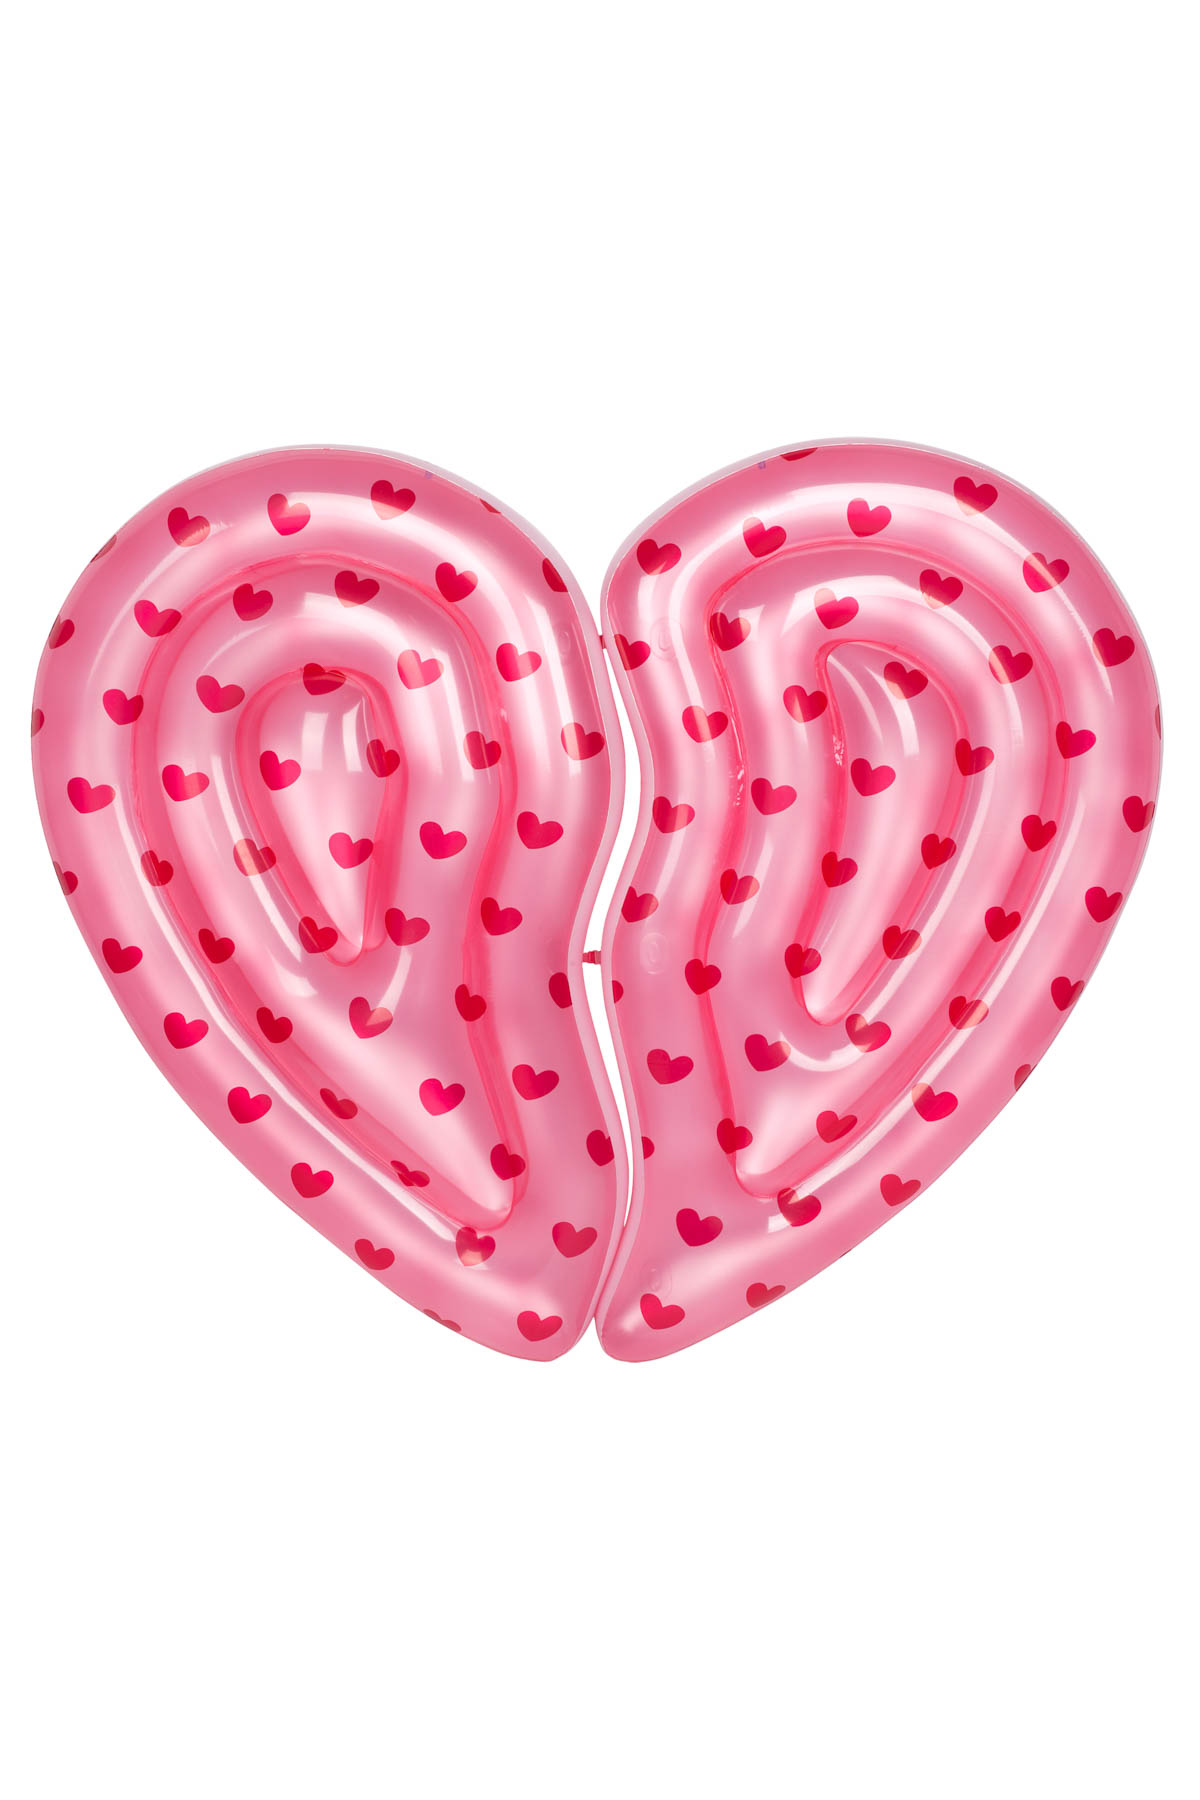 Sunnylife S Pool Accessories Luxe Twin Bff Heart Pool Float